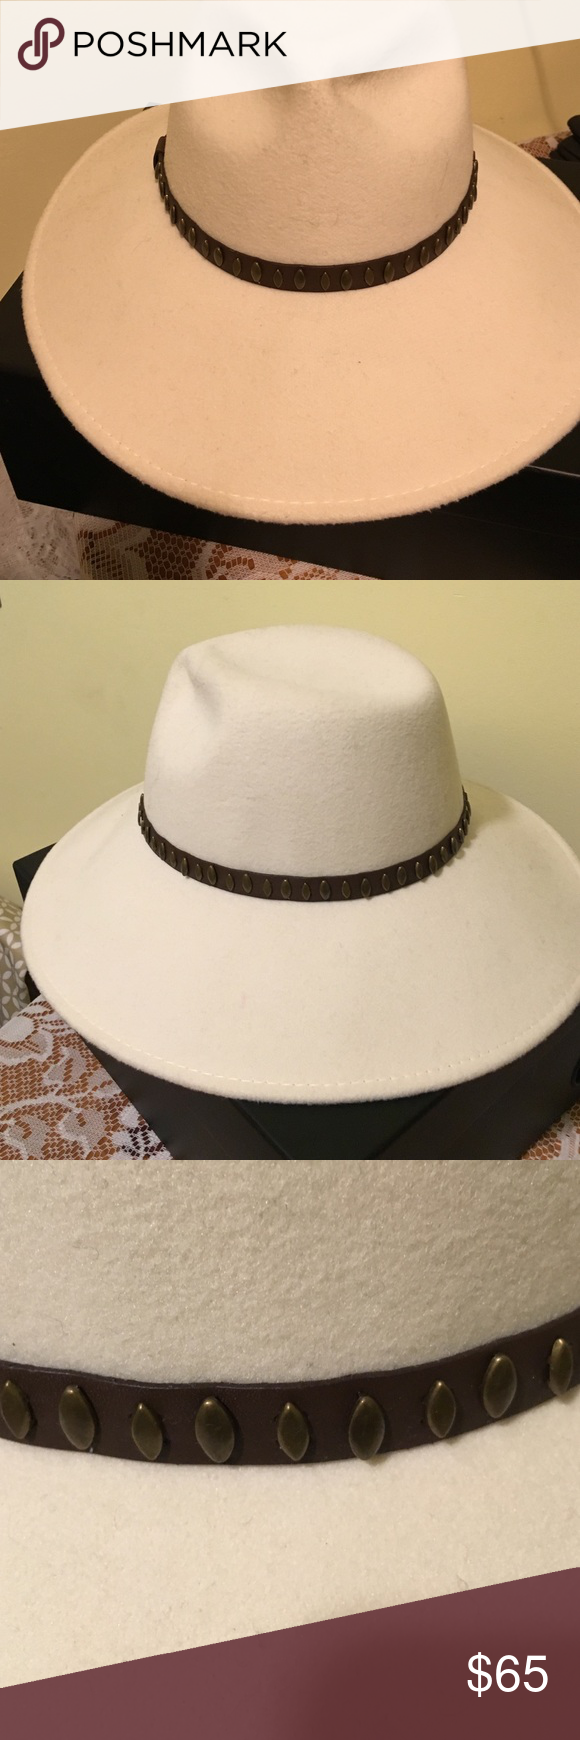 Cream brim hat This hat is beautiful going out on the town this is great for that special person that has everything and wants one more hat . Hat has a brown leather like strap around with Bronze studs see pic Accessories Hats